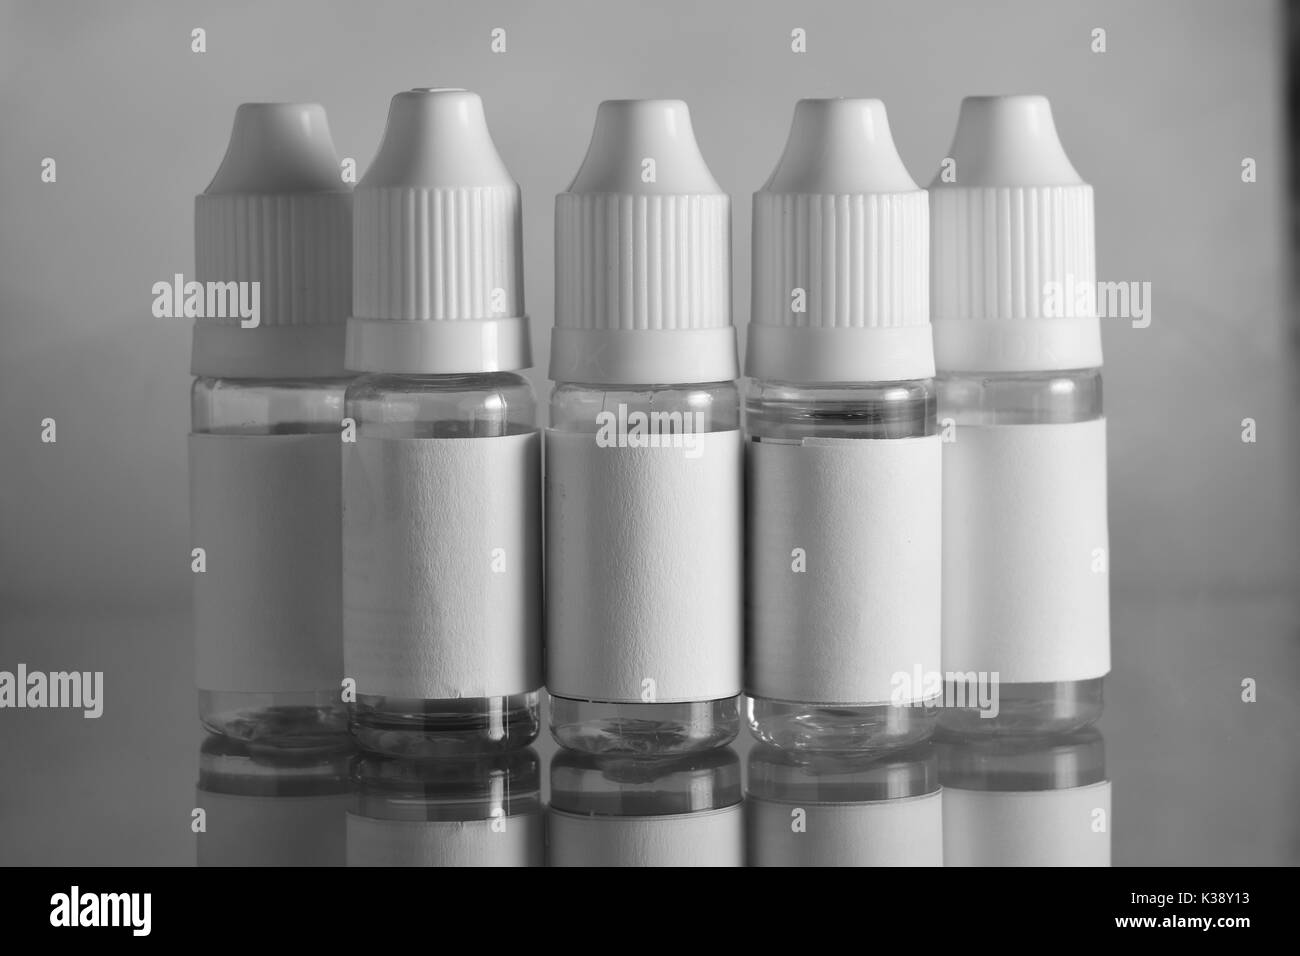 Isolated e liquid bottles for vaping devices, e cigarette, electronic cigarette, over a black background. Stock Photo